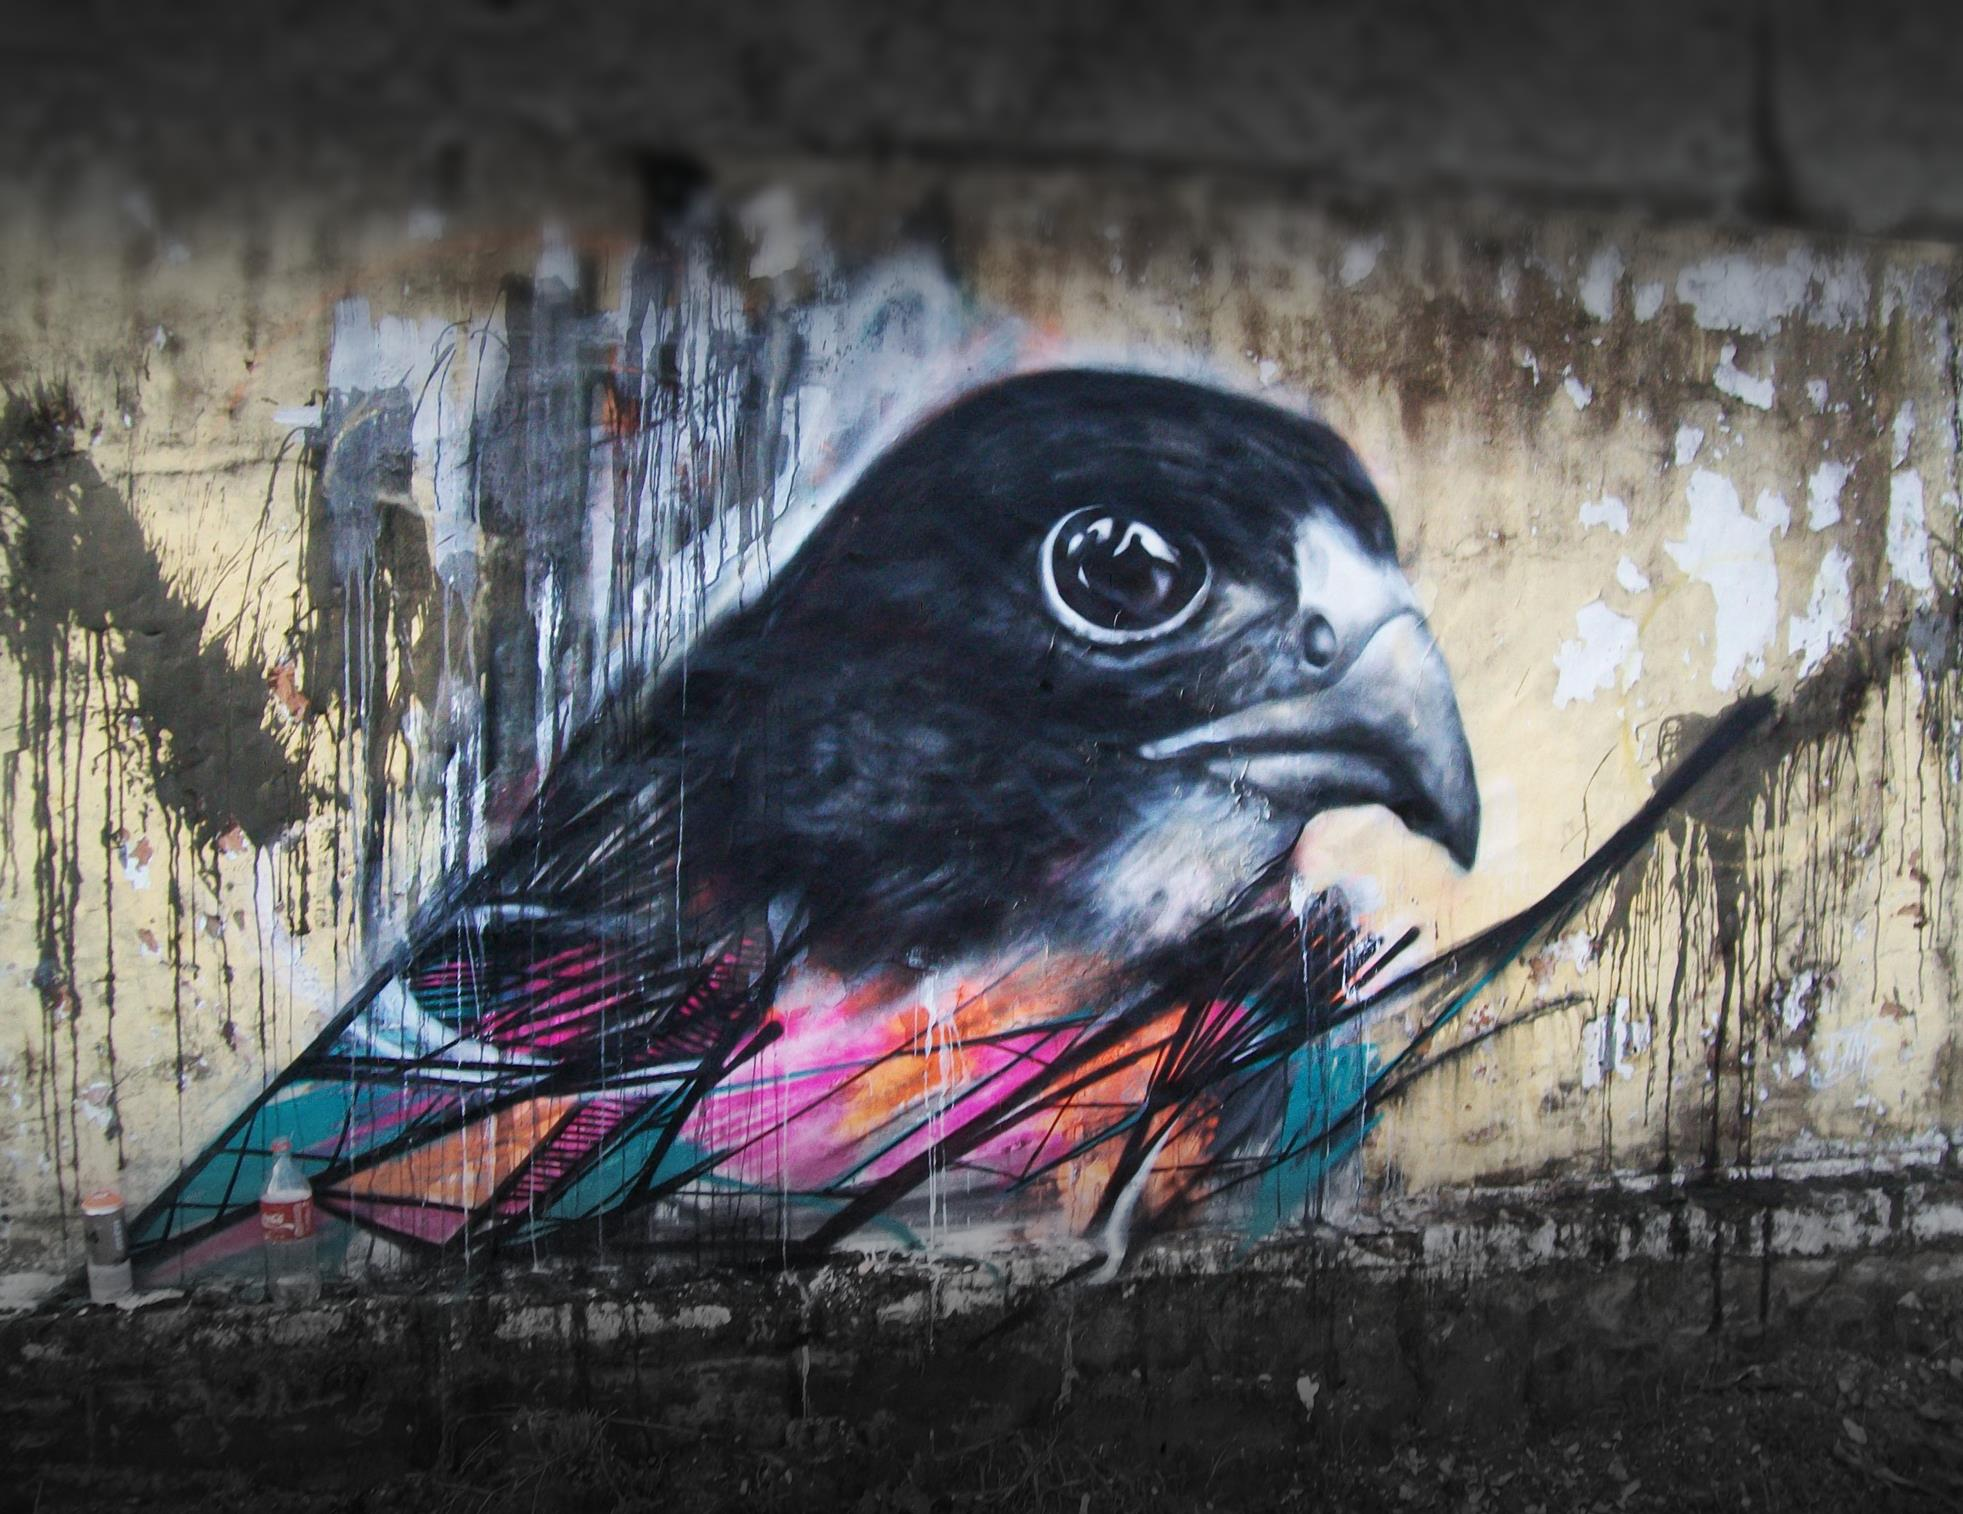 graffiti birds by brazilian artist l7m 1 Graffiti Birds by Brazilian Artist L7M